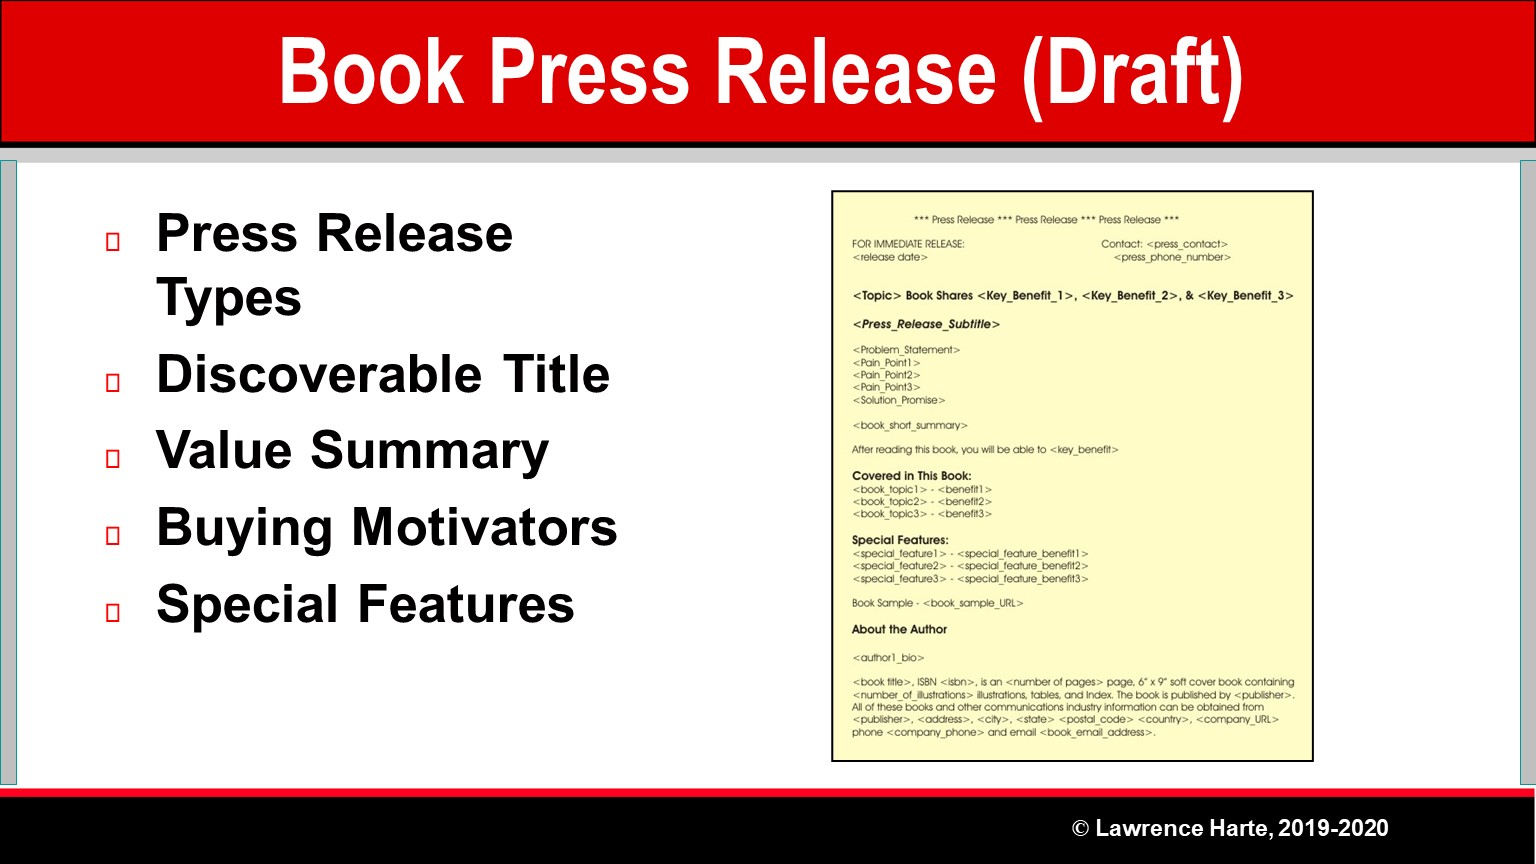 Book Pre-Launch Marketing Draft Press Release